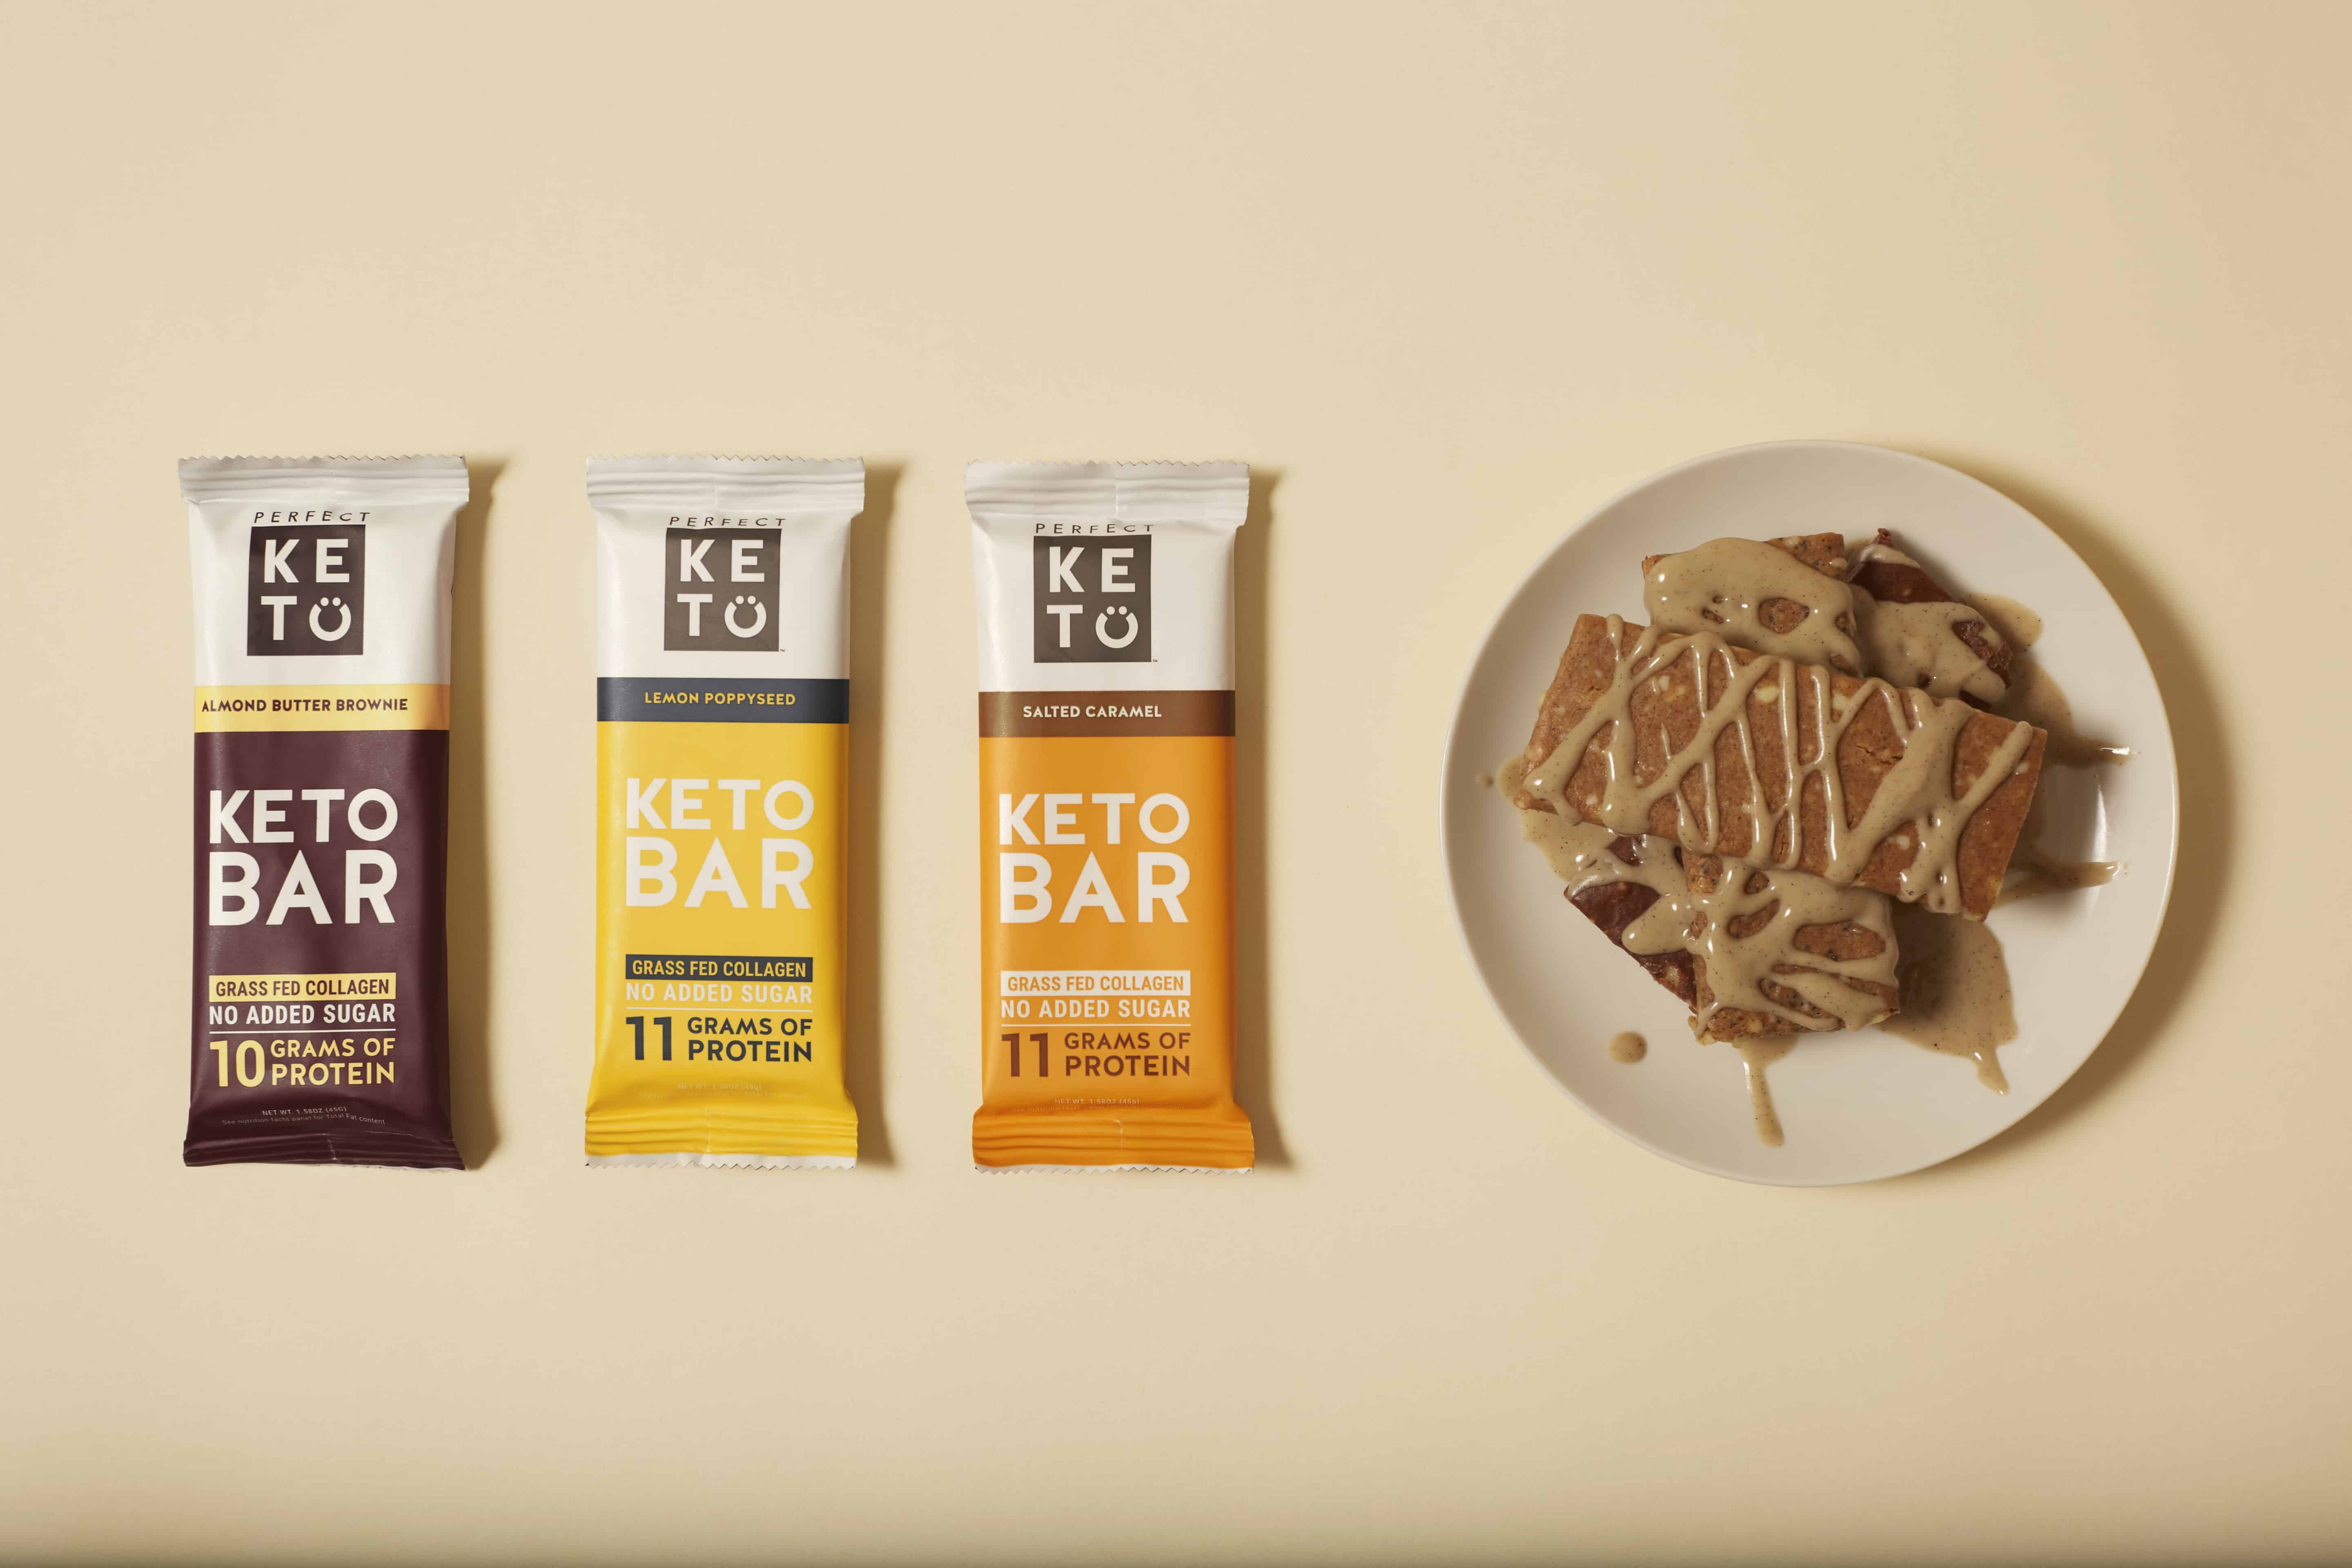 A collection of Perfect Keto NEW Keto Bars in Lemon Poppyseed & Salted Caramel, with Discount Code